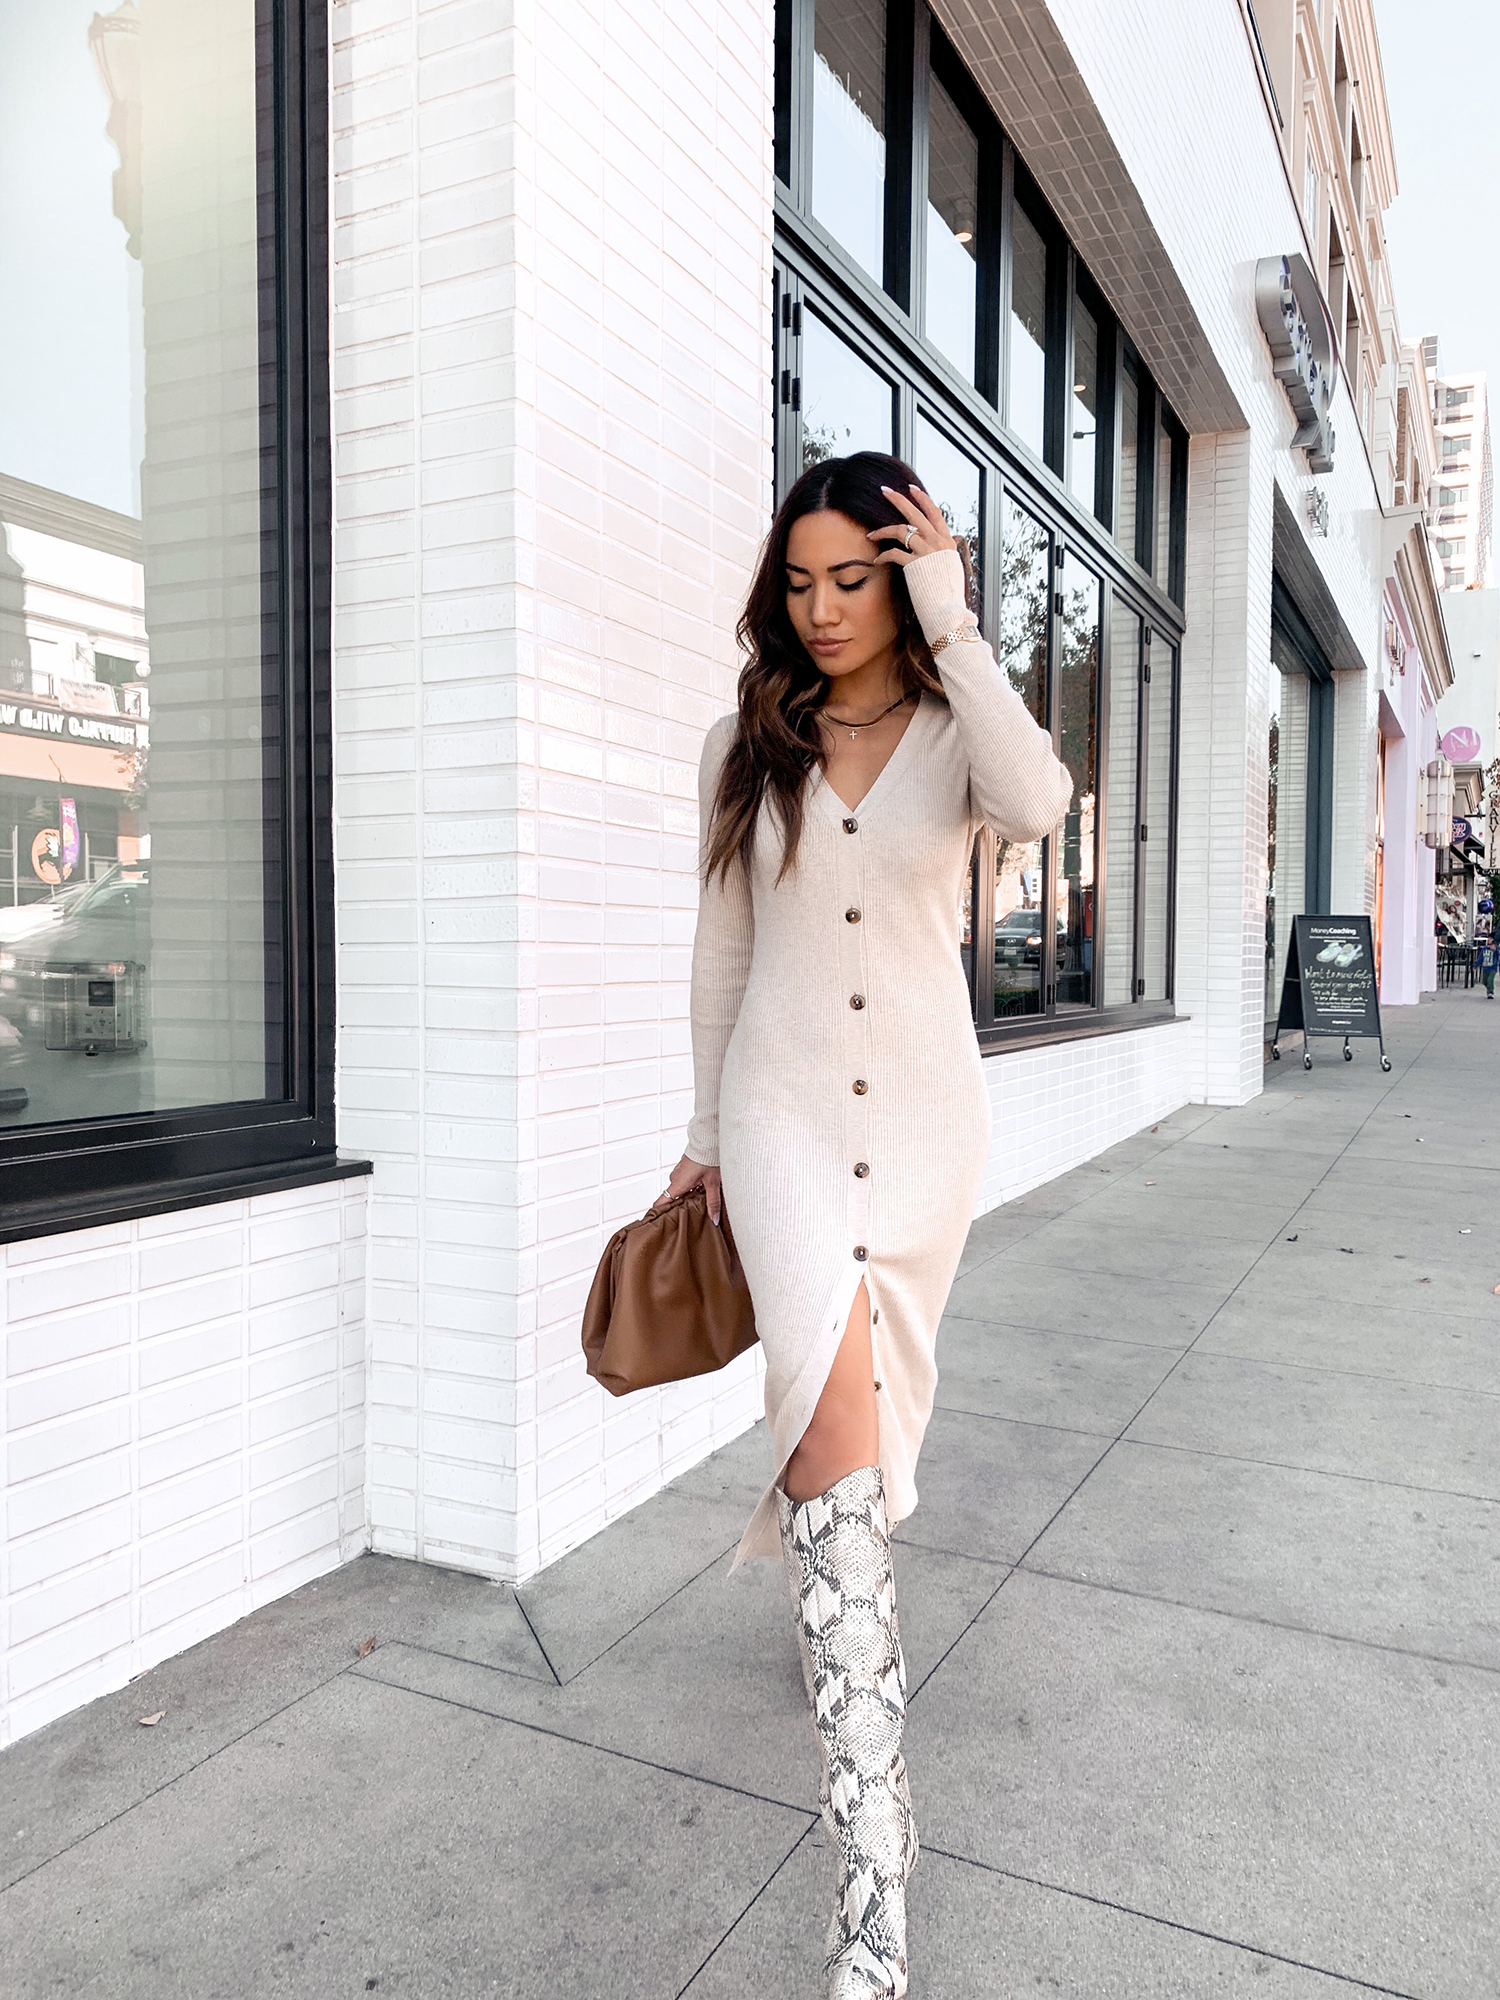 5 Sweater Dress Outfits To Try This Winter – Jessi Malay